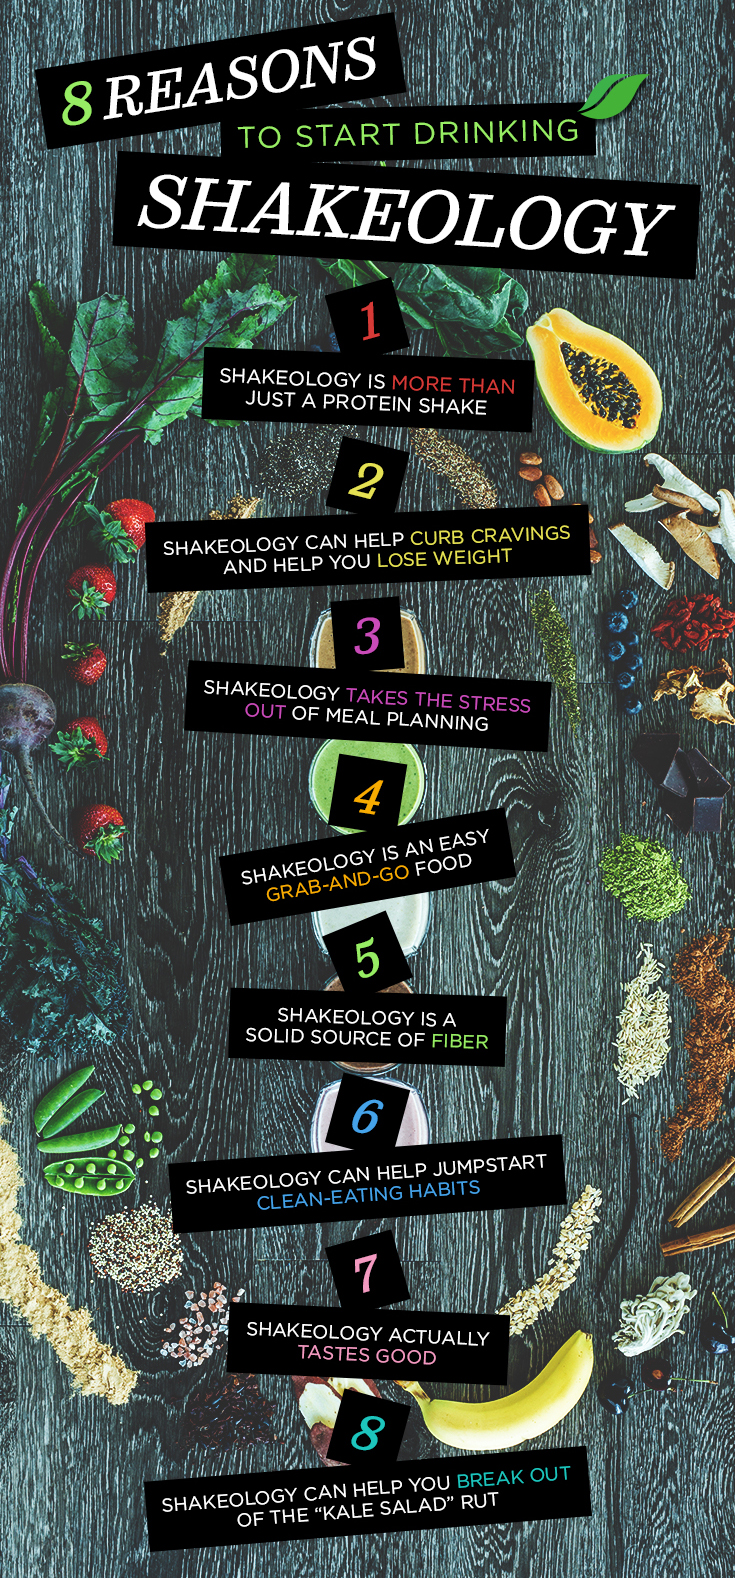 8 Reasons to Drink Shakeology